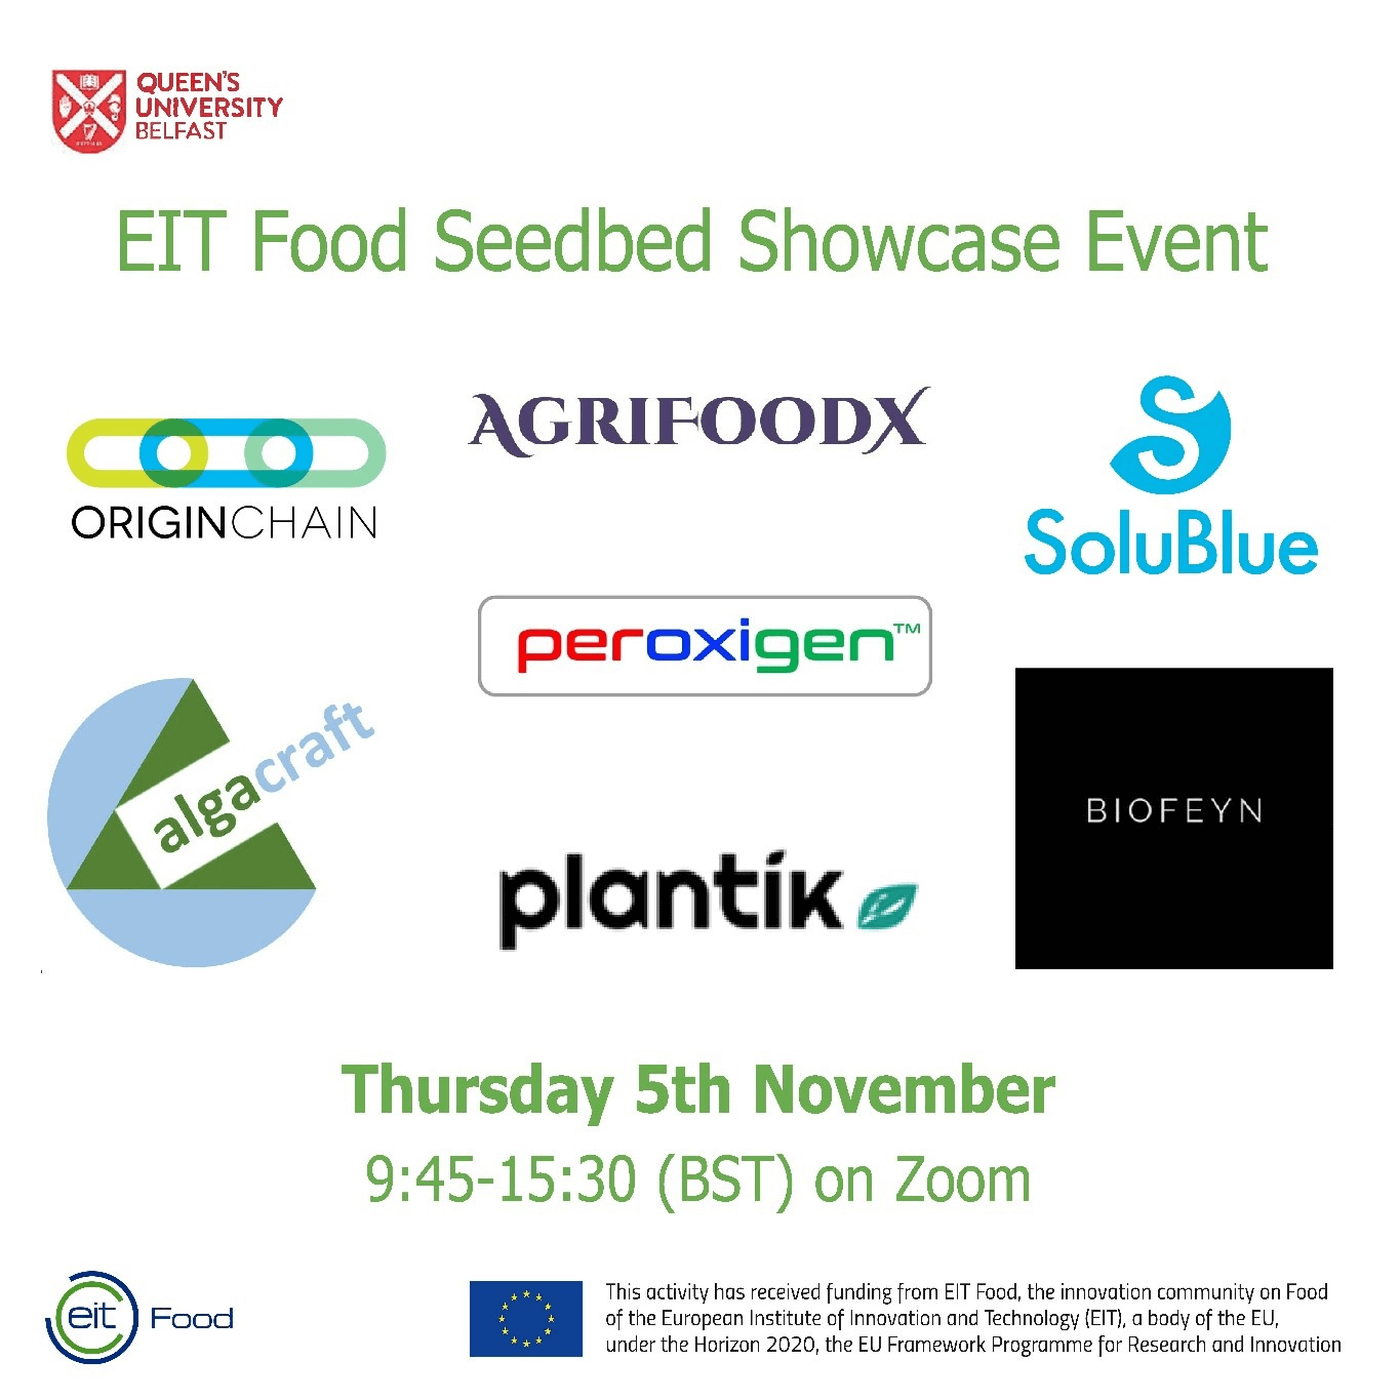 EIT Food Seedbed Showcase Event at Queen's University Belfast